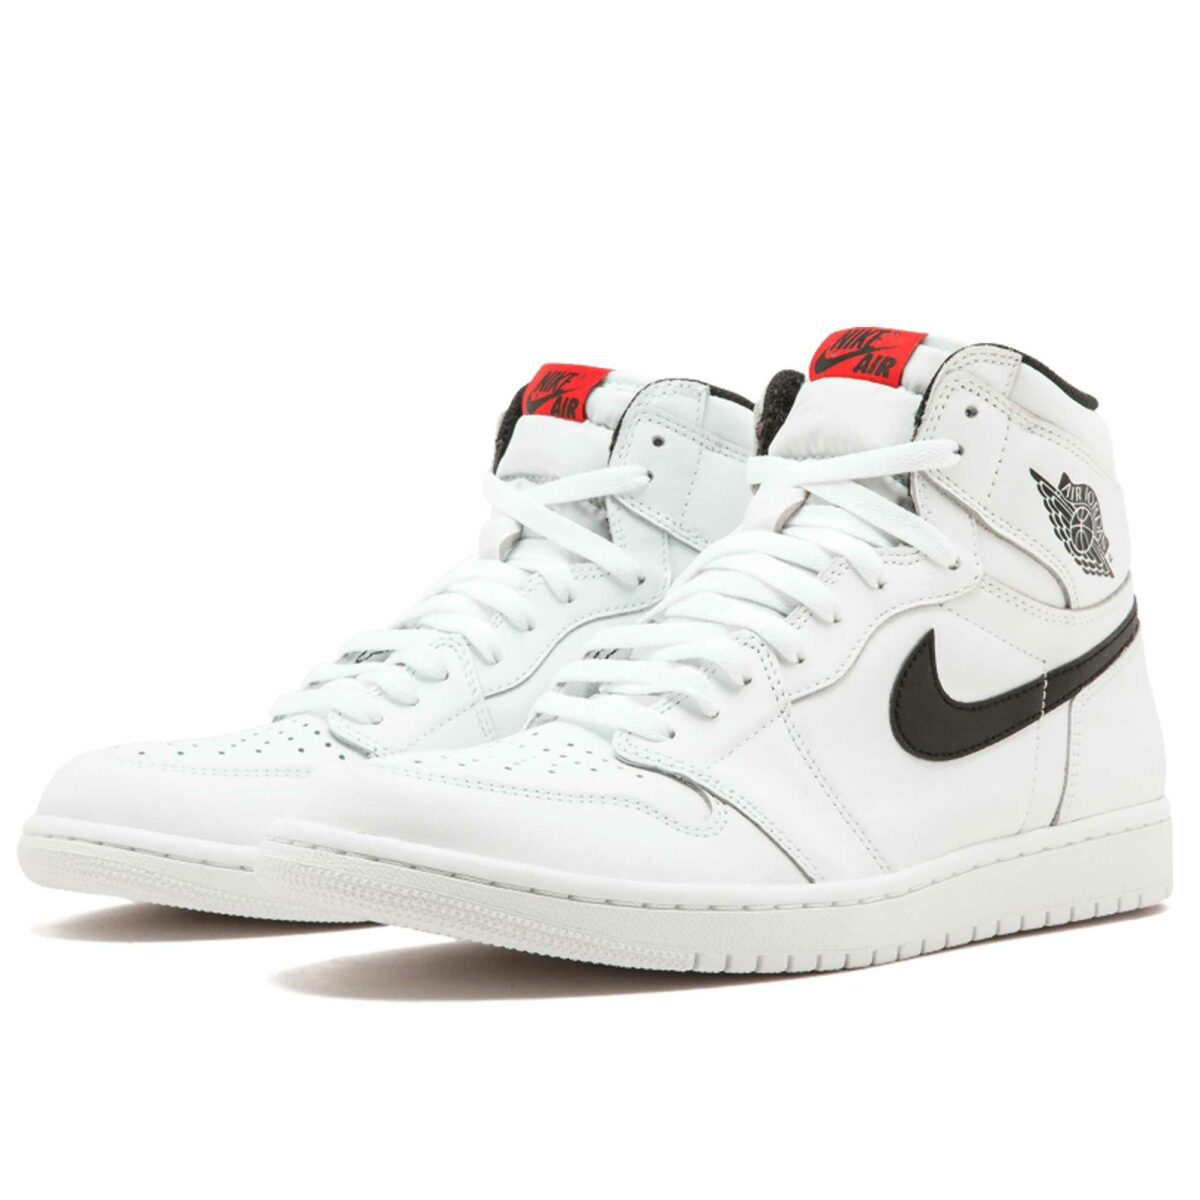 Air Jordan 1 retro high og white black 555088_102 купить